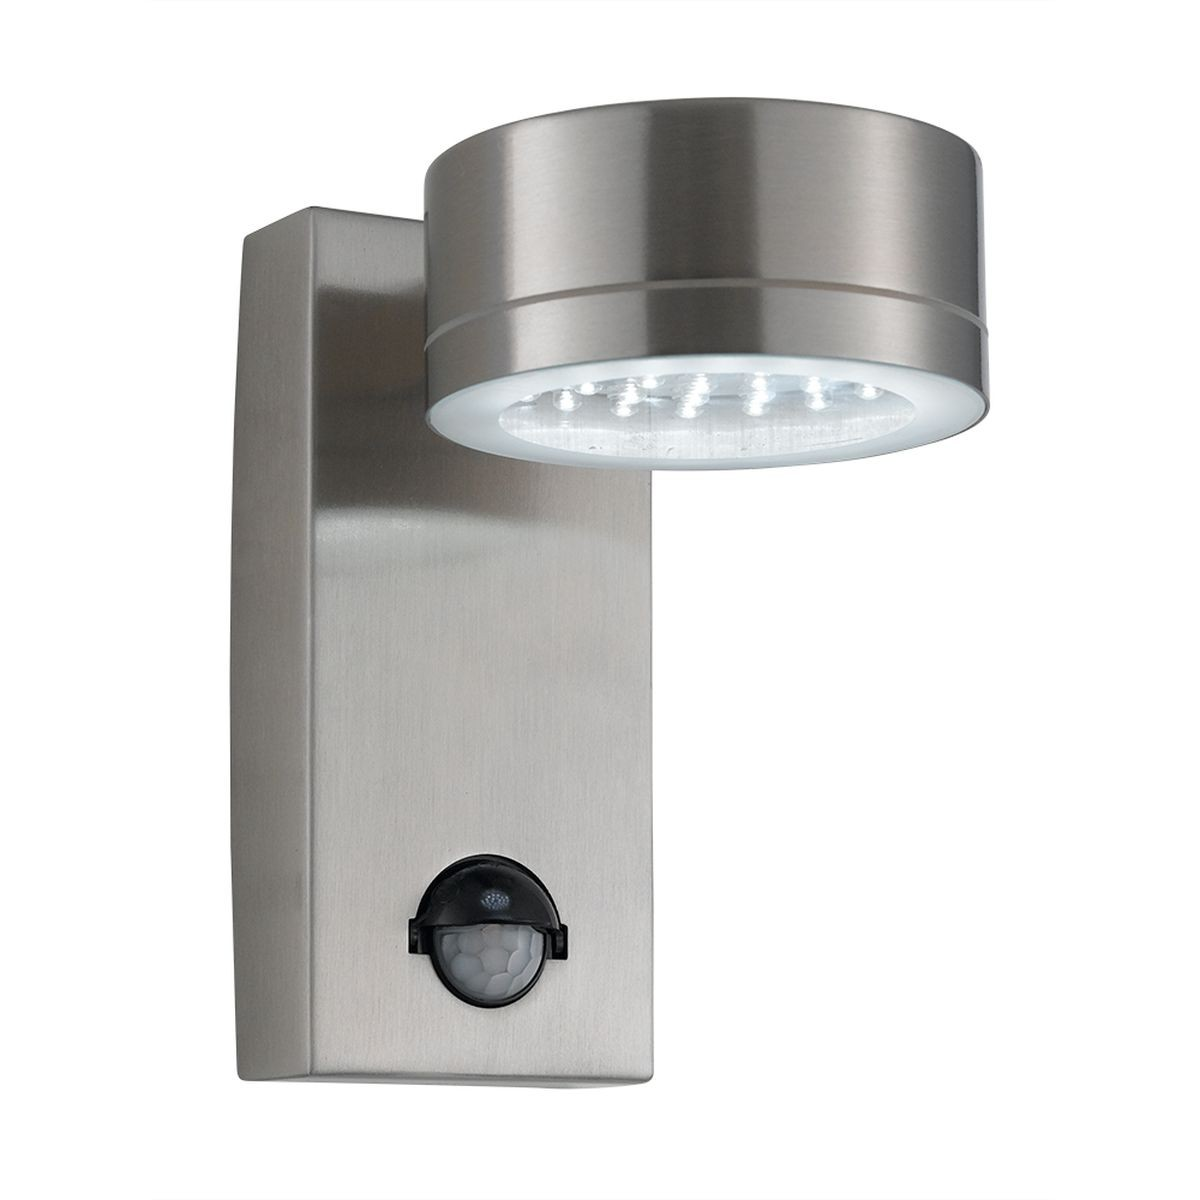 led outdoor sensor light photo - 5